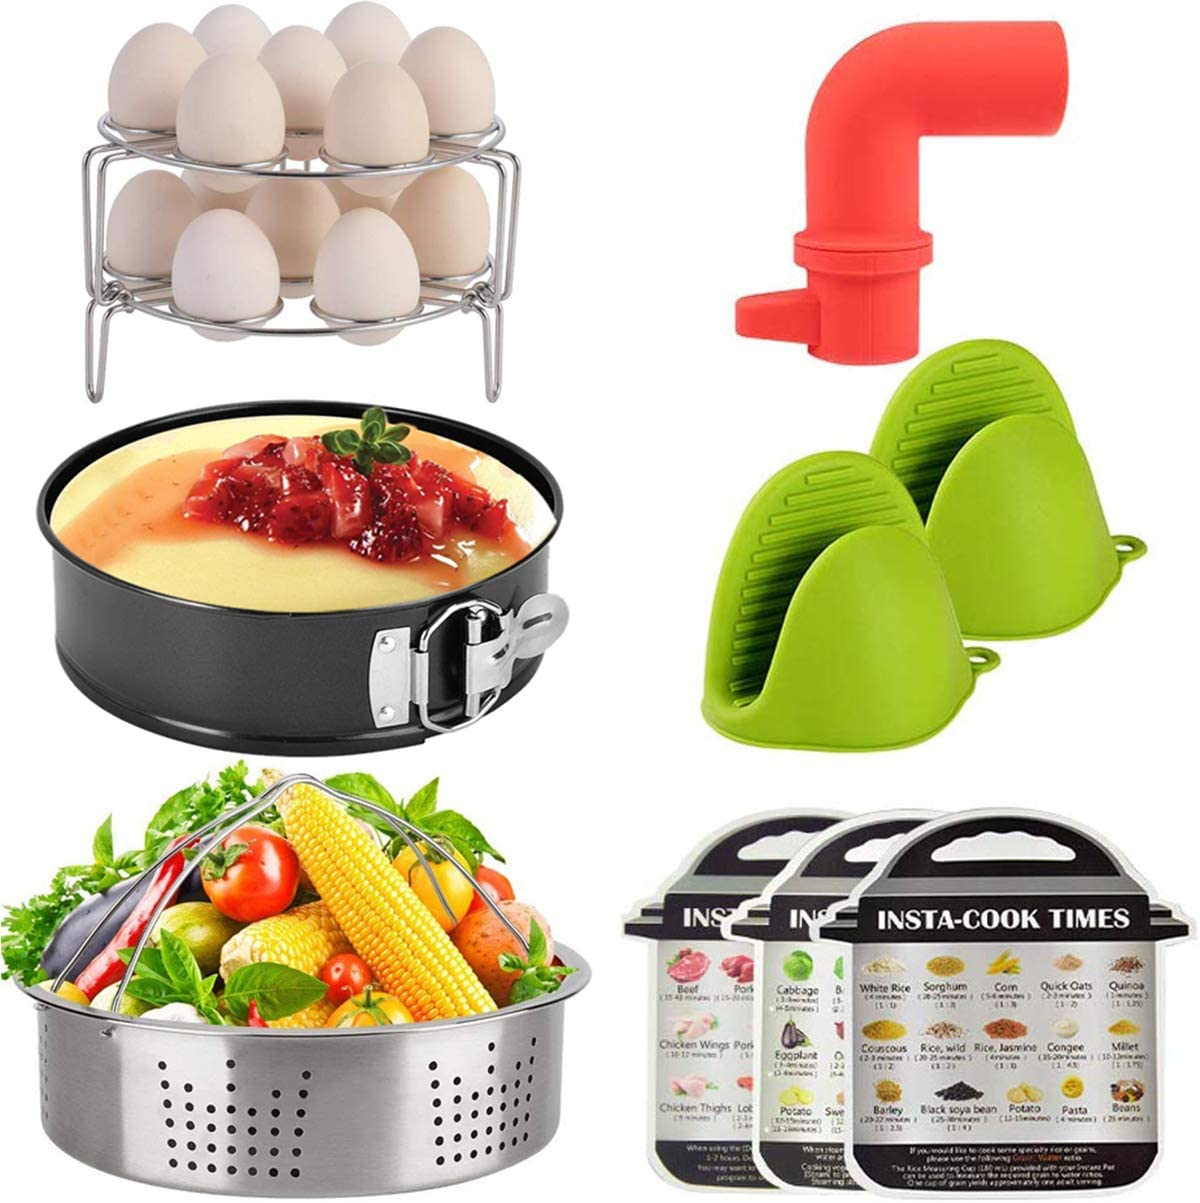 Accessories-Set-for-Instant-Pot, Pressure Cooker Accessories Kit 10 Pieces, Kitchen Wares with Springform Pan, Eggs Racks, Steamer Basket, Oven Mitts, Release Valve and Magnetic Cheat Sheets (5,6 8QT)